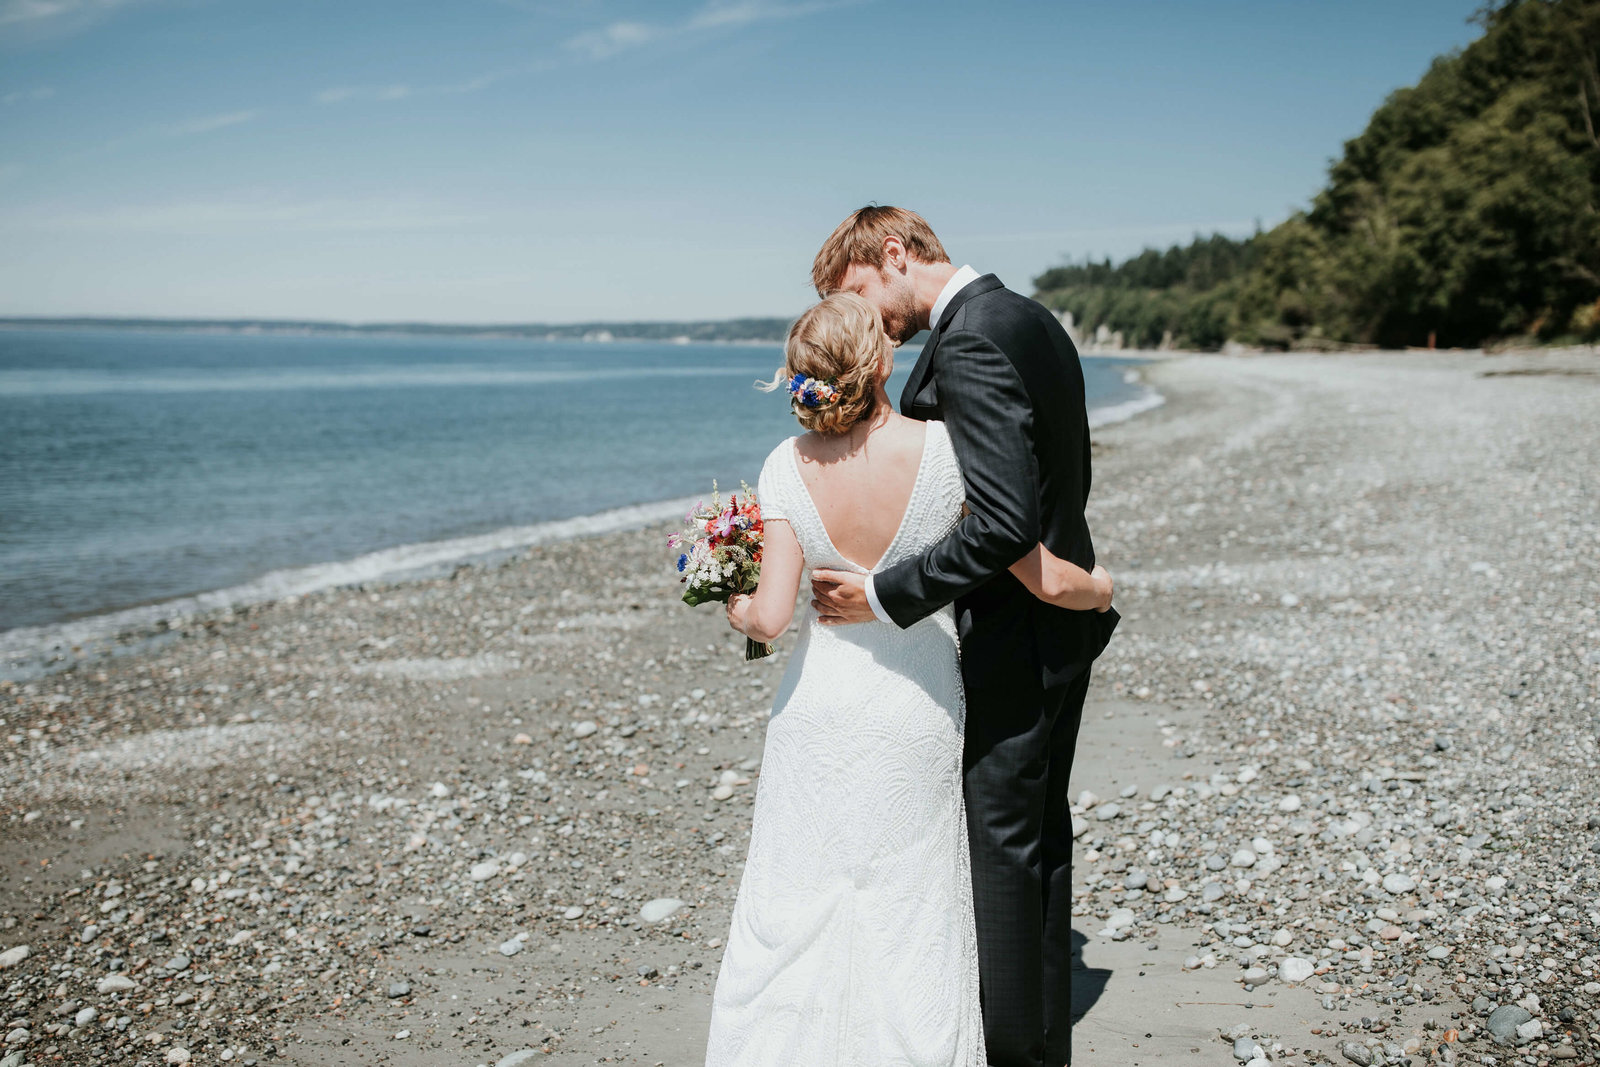 Whidbey-Island-wedding-Sarah+Charlie-Seattle-Highlights-by-Adina-Preston-Photography-2019-56